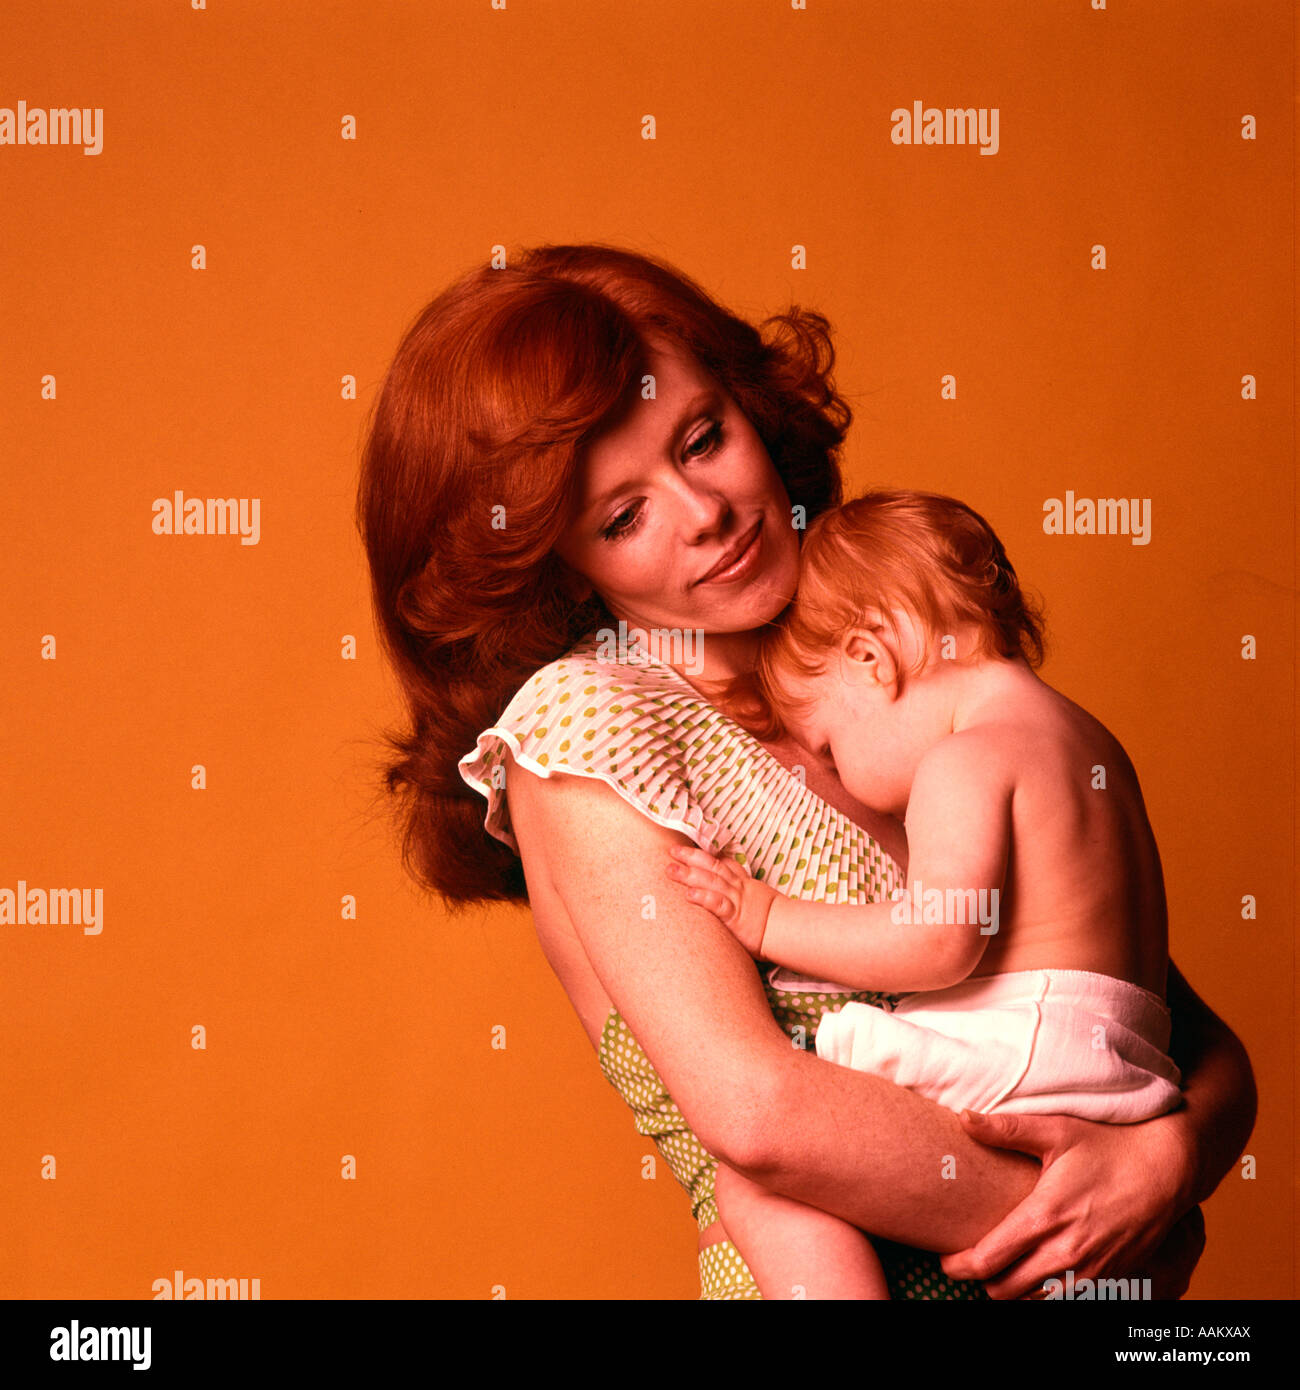 1970s PENSIVE SMILING RED HEADED MOTHER HUGGING RED HEADED BABY CHILD WEARING A DIAPER - Stock Image